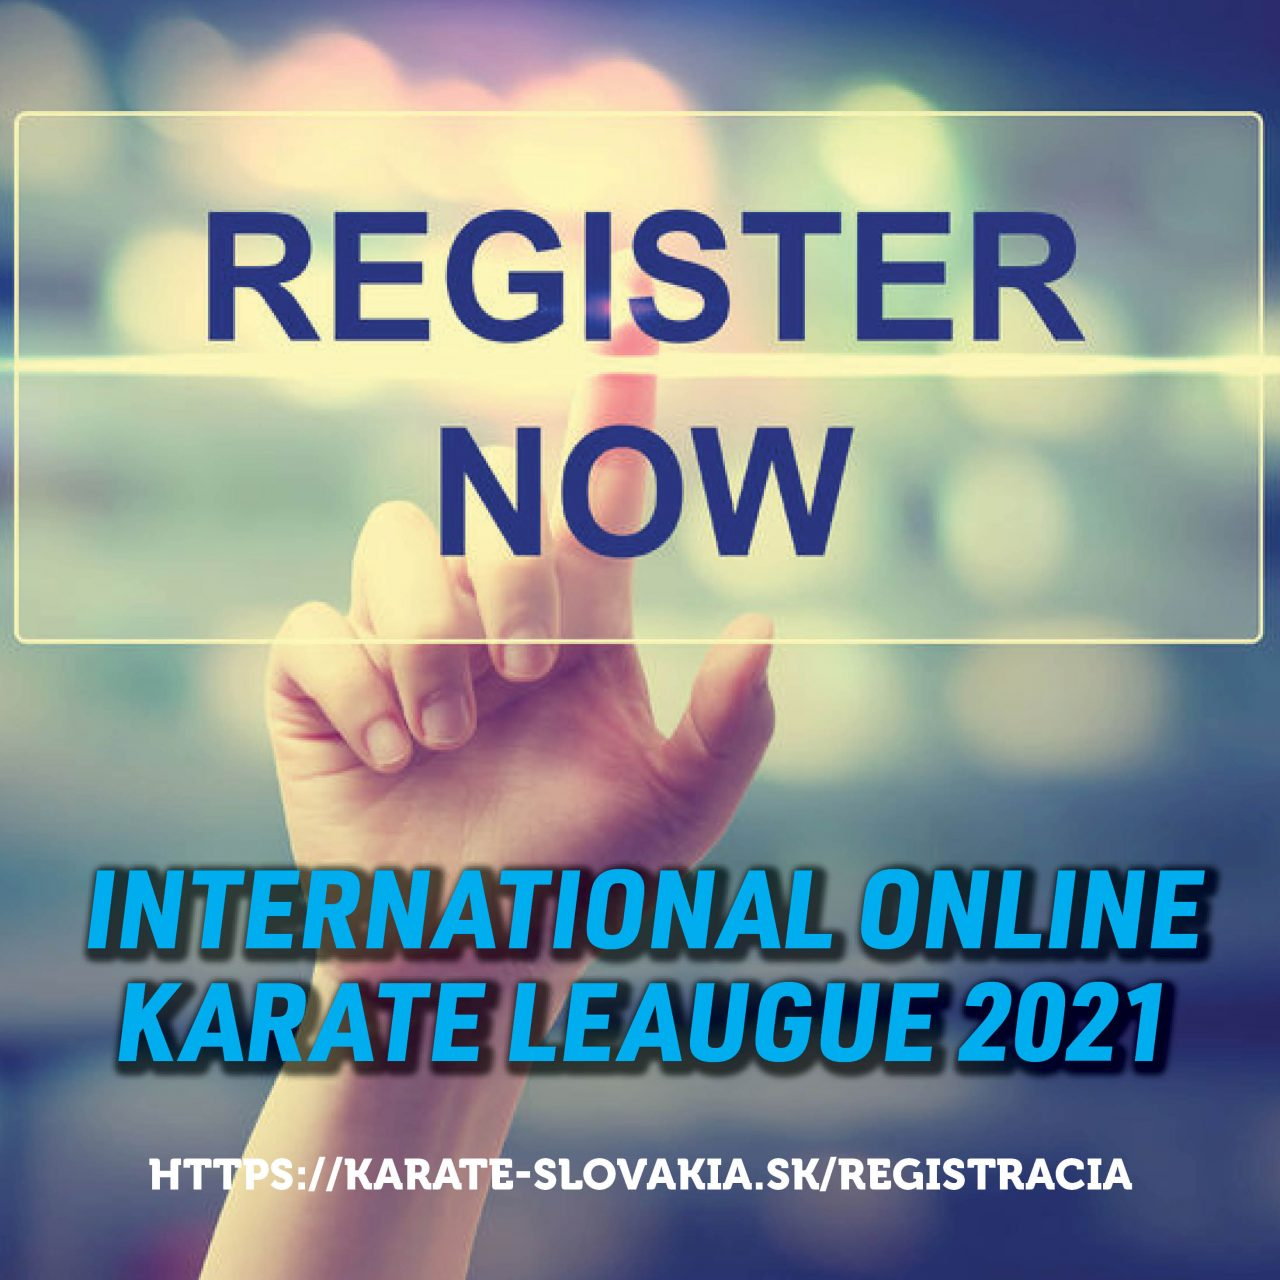 https://karate-slovakia.sk/wp-content/uploads/register_now-1280x1280.jpg